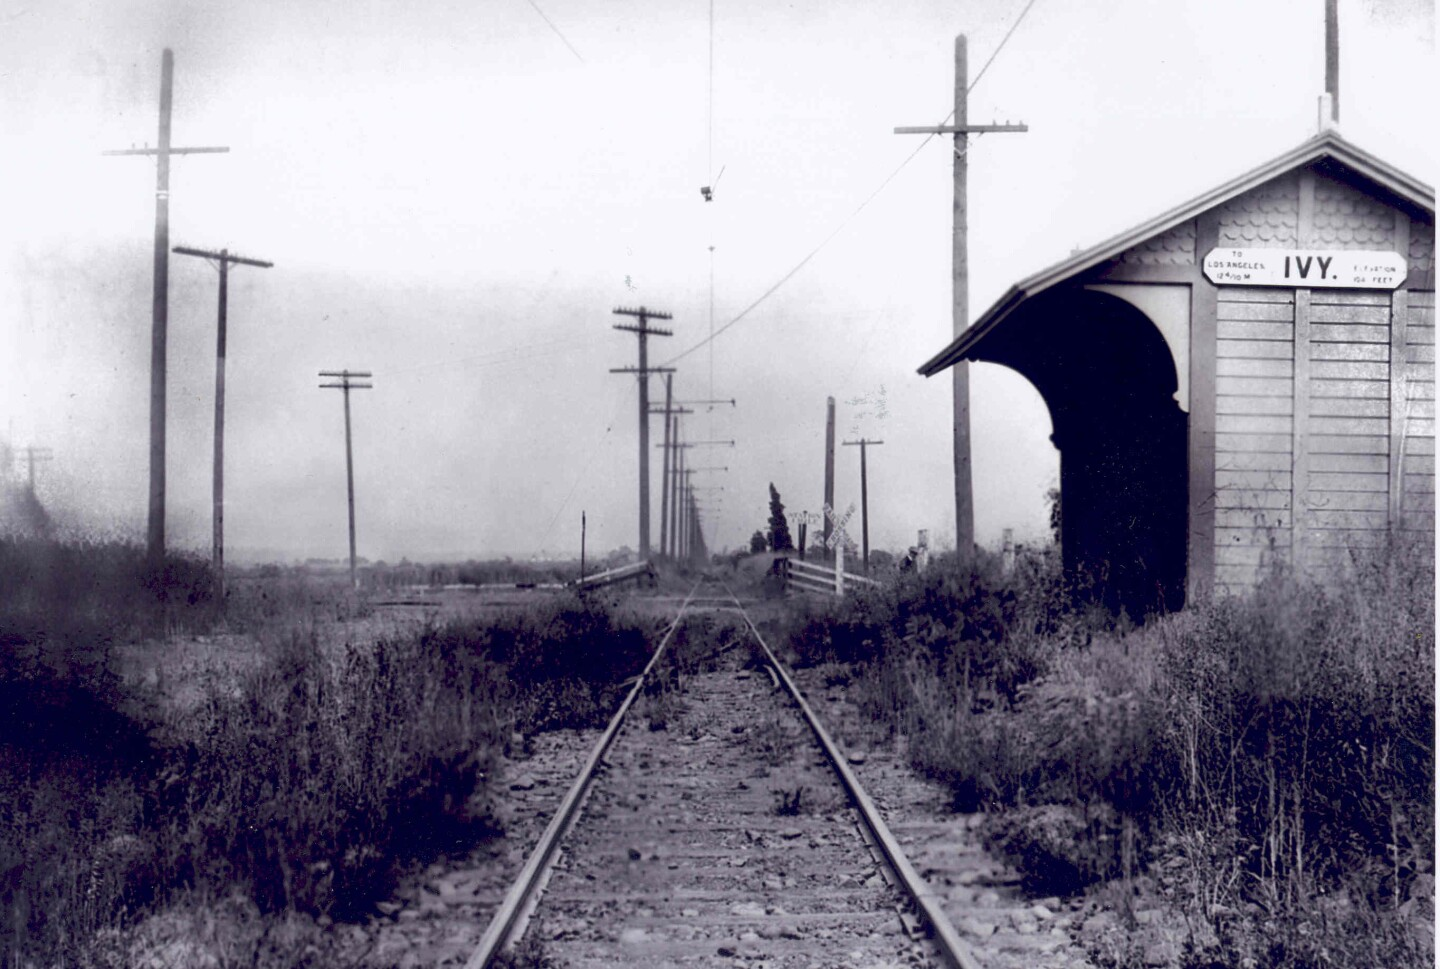 Named after the Ivy Park housing development, the Ivy station stop along the Santa Monica Air Line served present-day Culver City. Courtesy of the Metro Transportation Library and Archive. Used under a Creative Commons license.